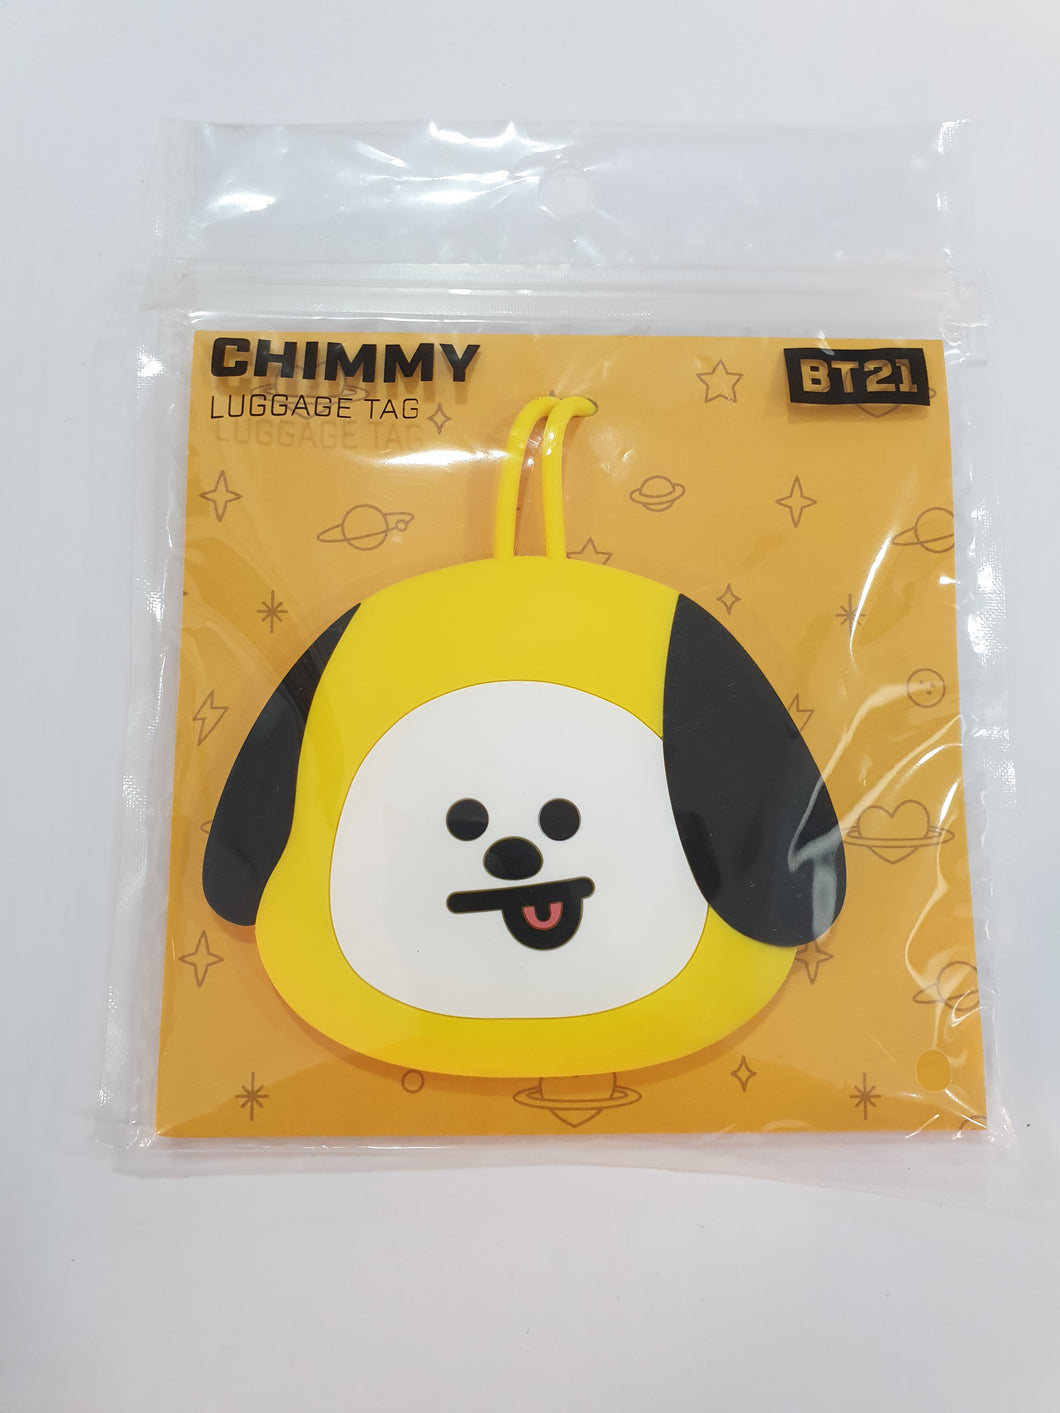 BT21 Luggage Tag Chimmy